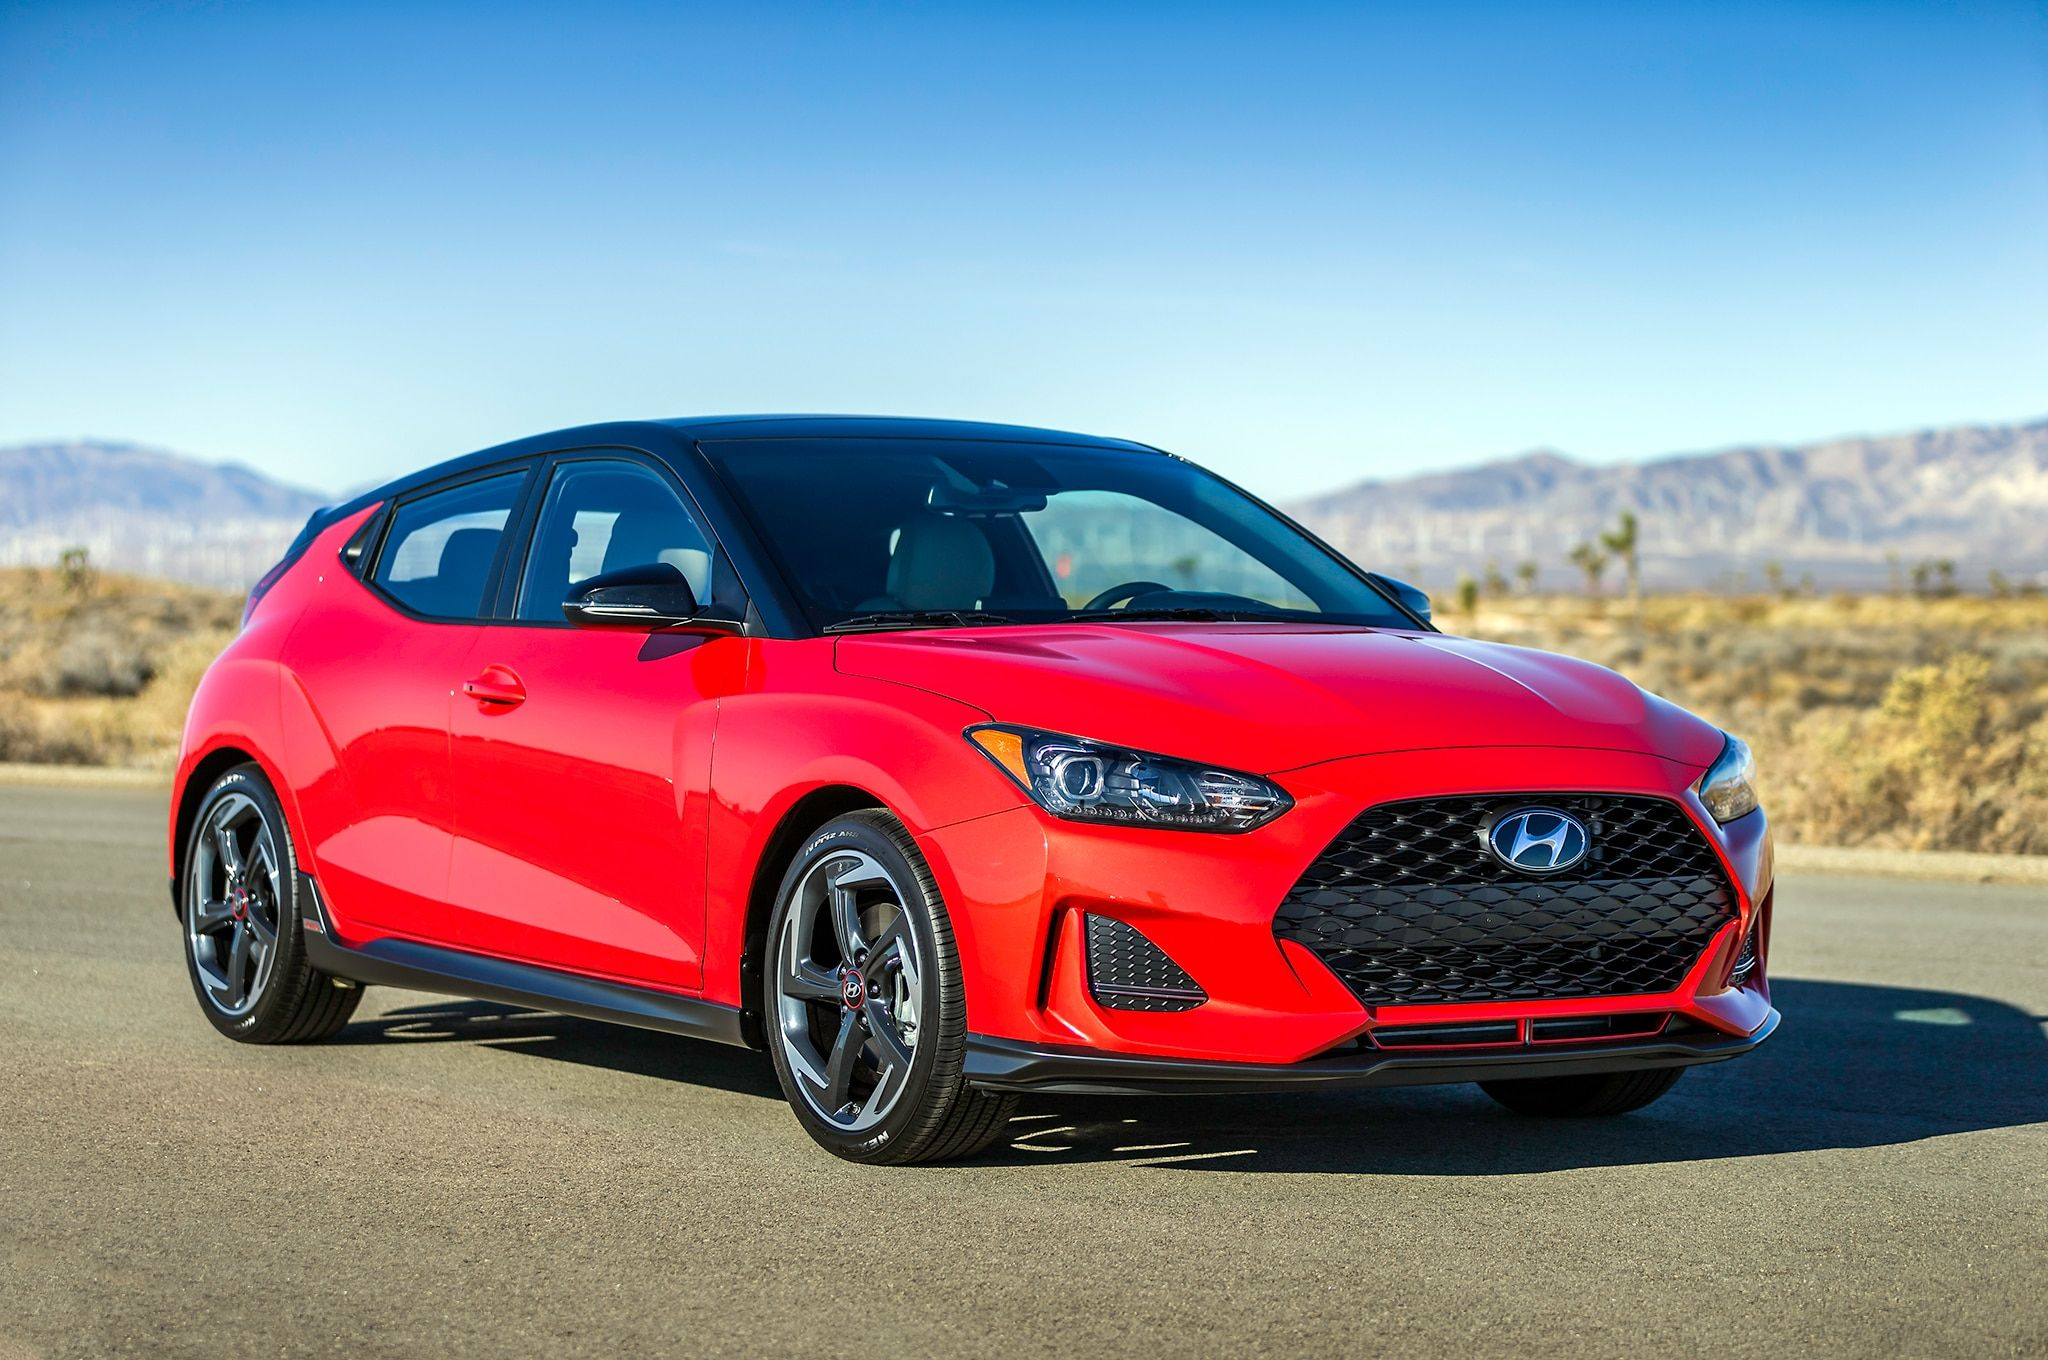 Hyundai Refers To Its Quirky One Plus Two Door 2019 Veloster As A Reverse Halo Vehicle Intending Draw Young Ers In And Get Them Hooked